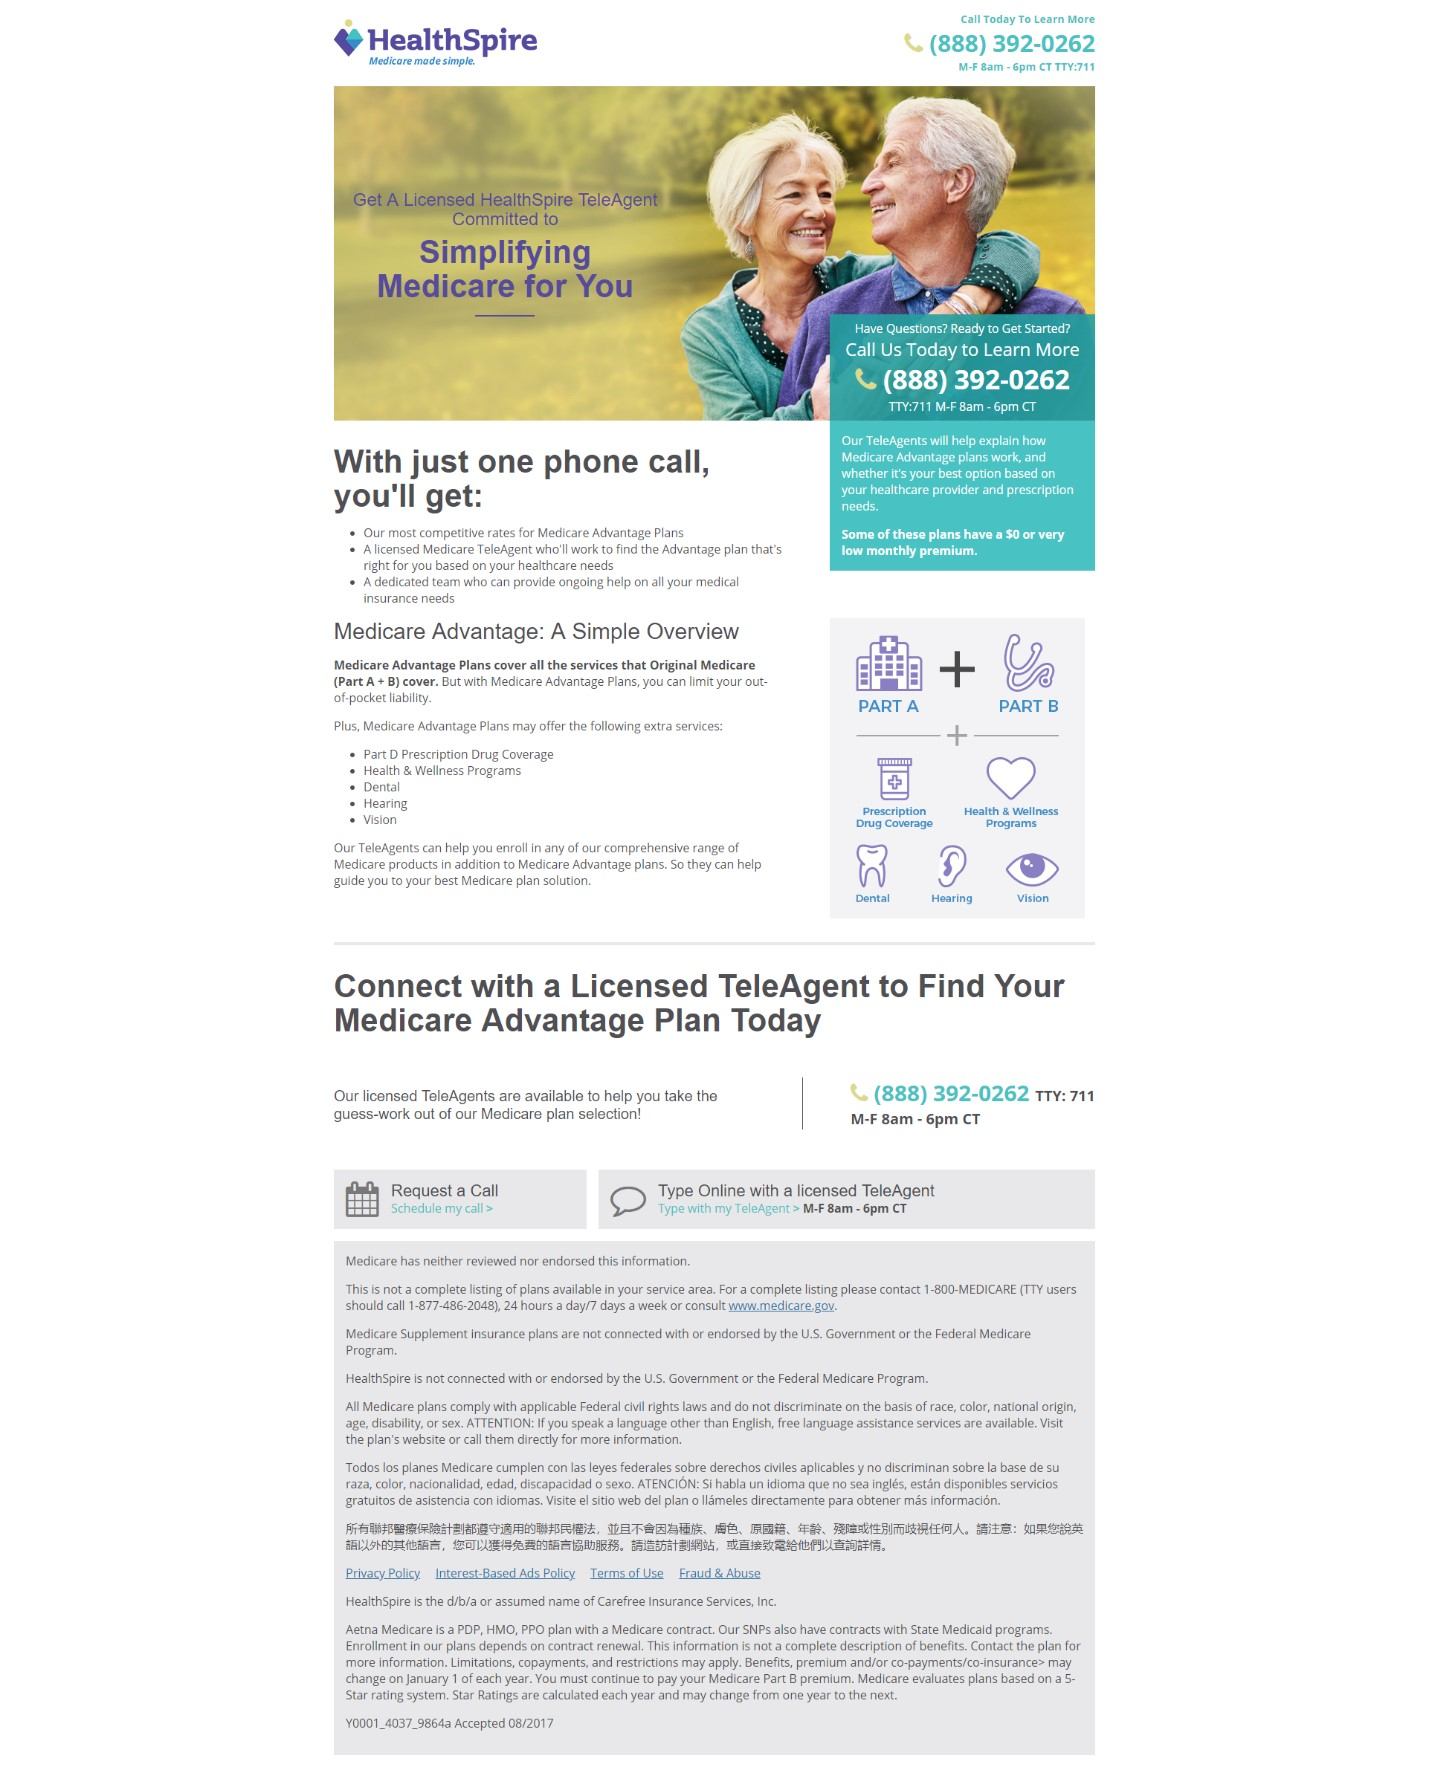 Landing Page Optimization: How Aetna's HealthSpire startup